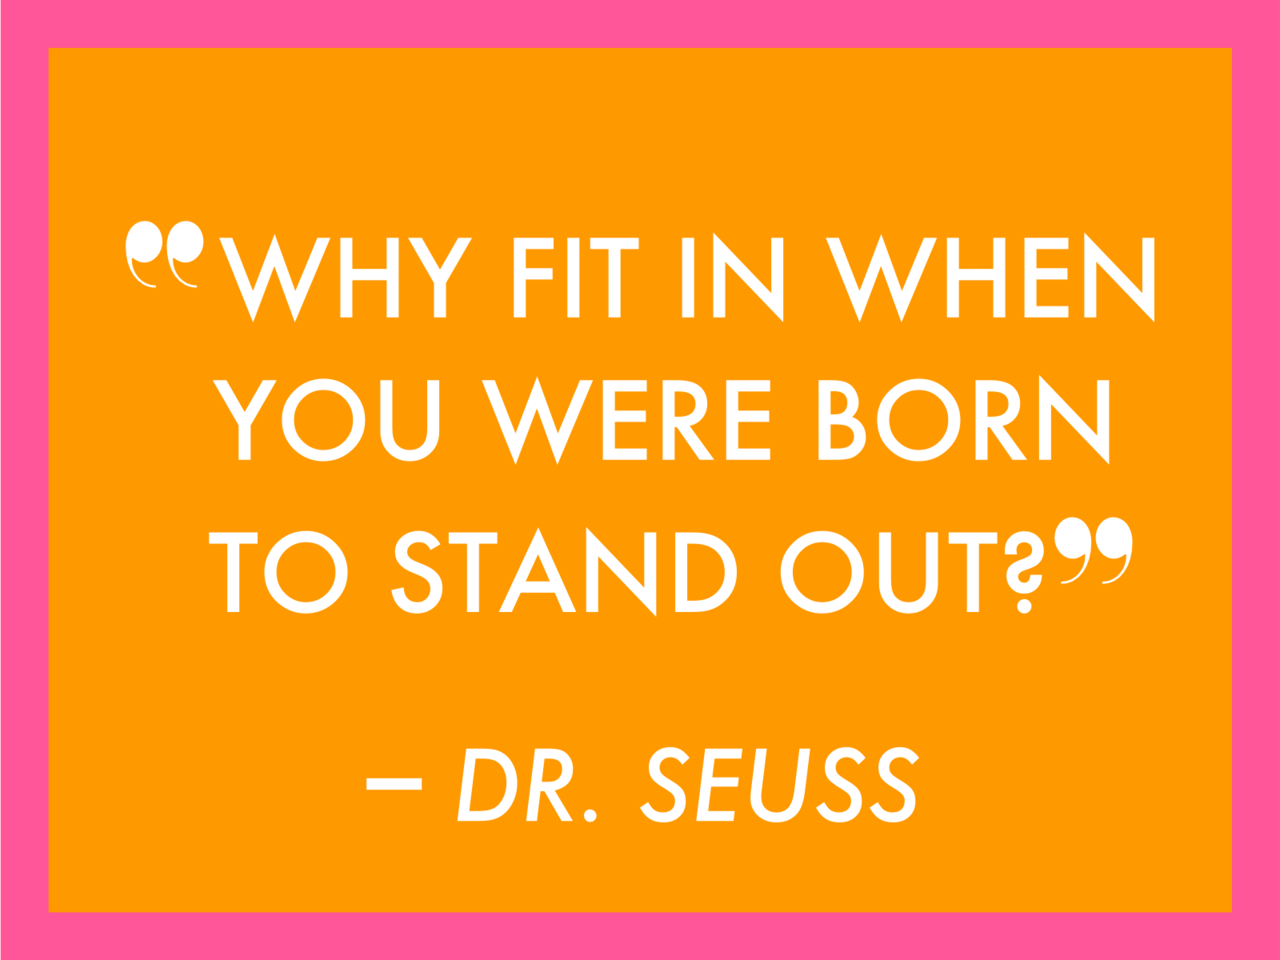 Quotes About Love: Dr Seuss Love Quotes